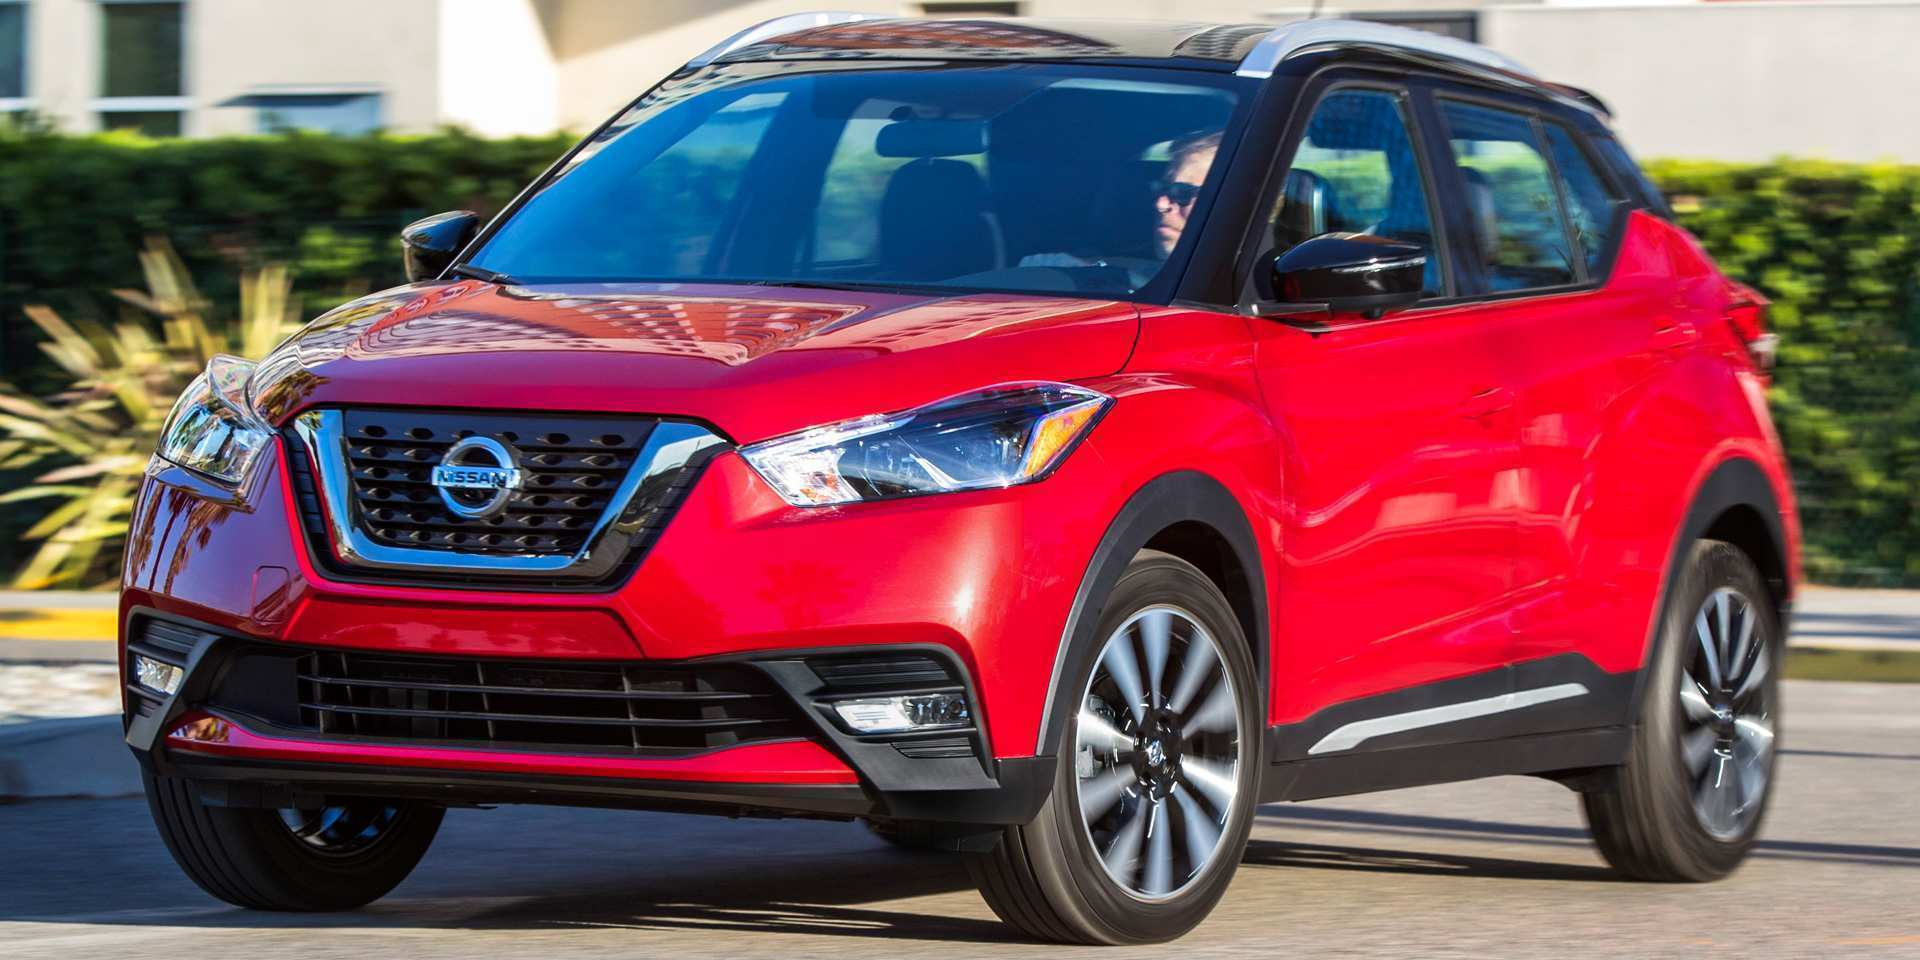 34 All New 2019 Nissan Cars Images for 2019 Nissan Cars